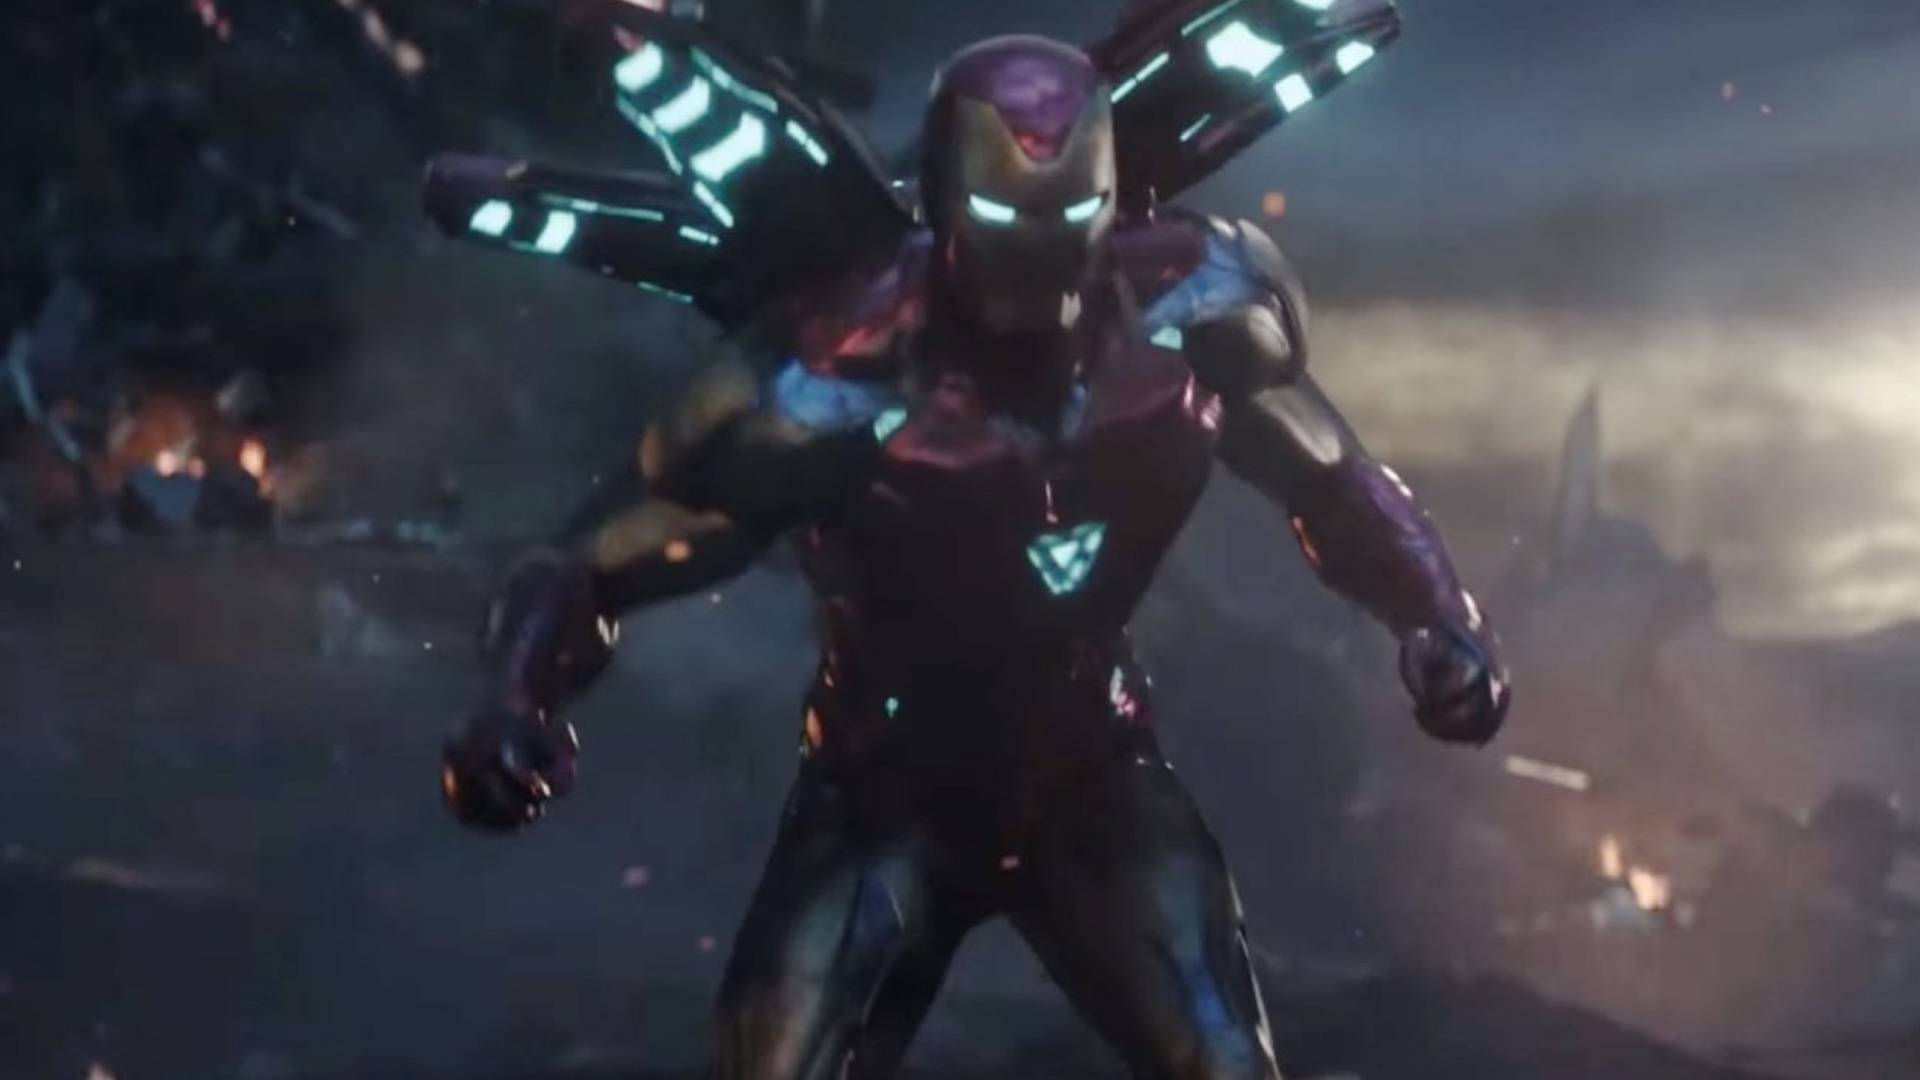 AVENGERS ENDGAME Director Shed Some More Light on Iron Mans Role 1920x1080